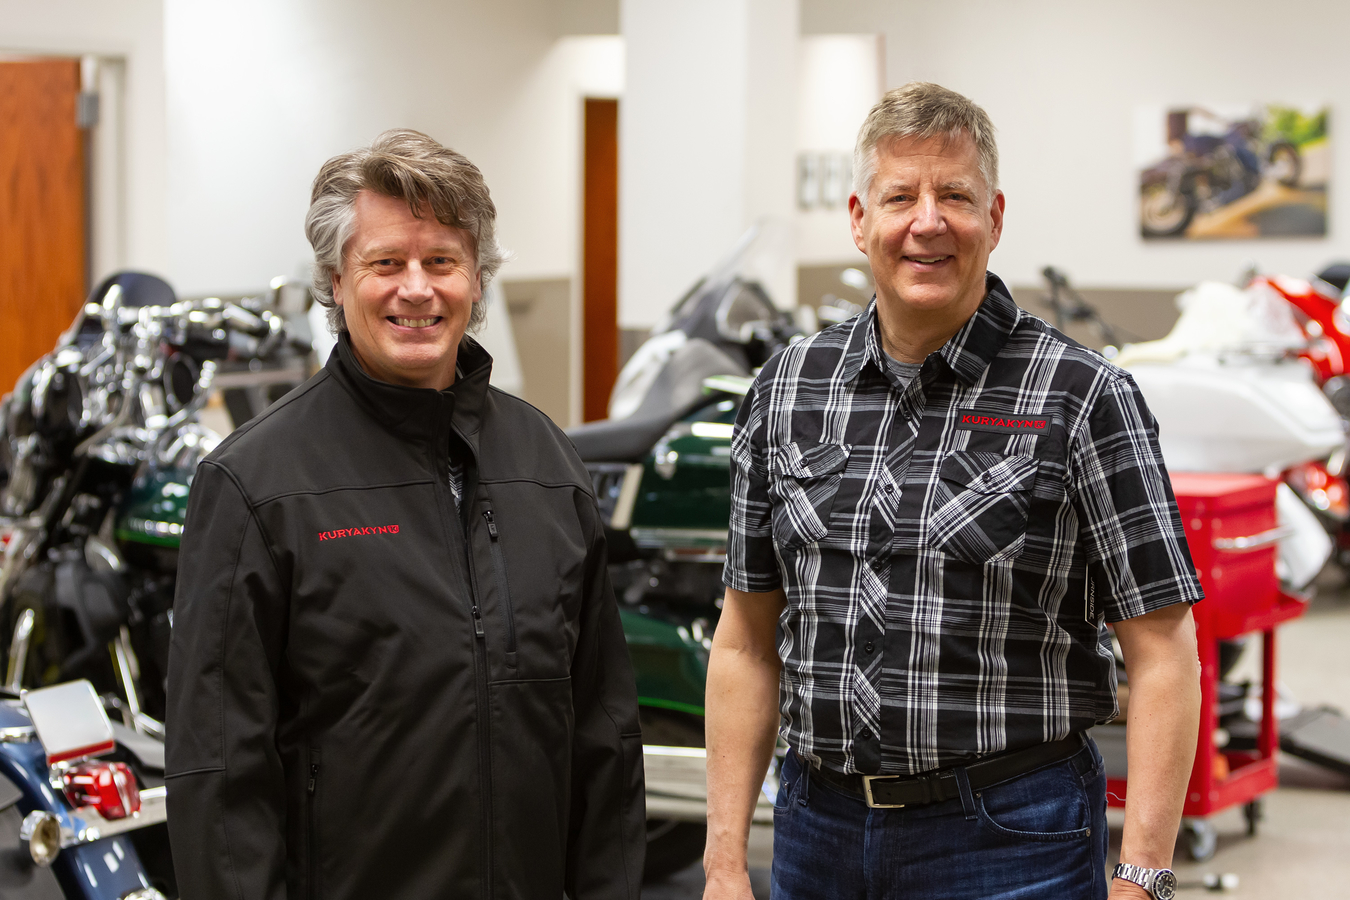 Kuryakyn recently named powersports industry veterans Tony Stefanelli (left) and Lars LaVine to senior-level roles at the Somerset WI-based company. Stefanelli is Vice President of Product Development & Engineering and Lavine is Vice President of Global Sourcing & Supply Chain Operations.